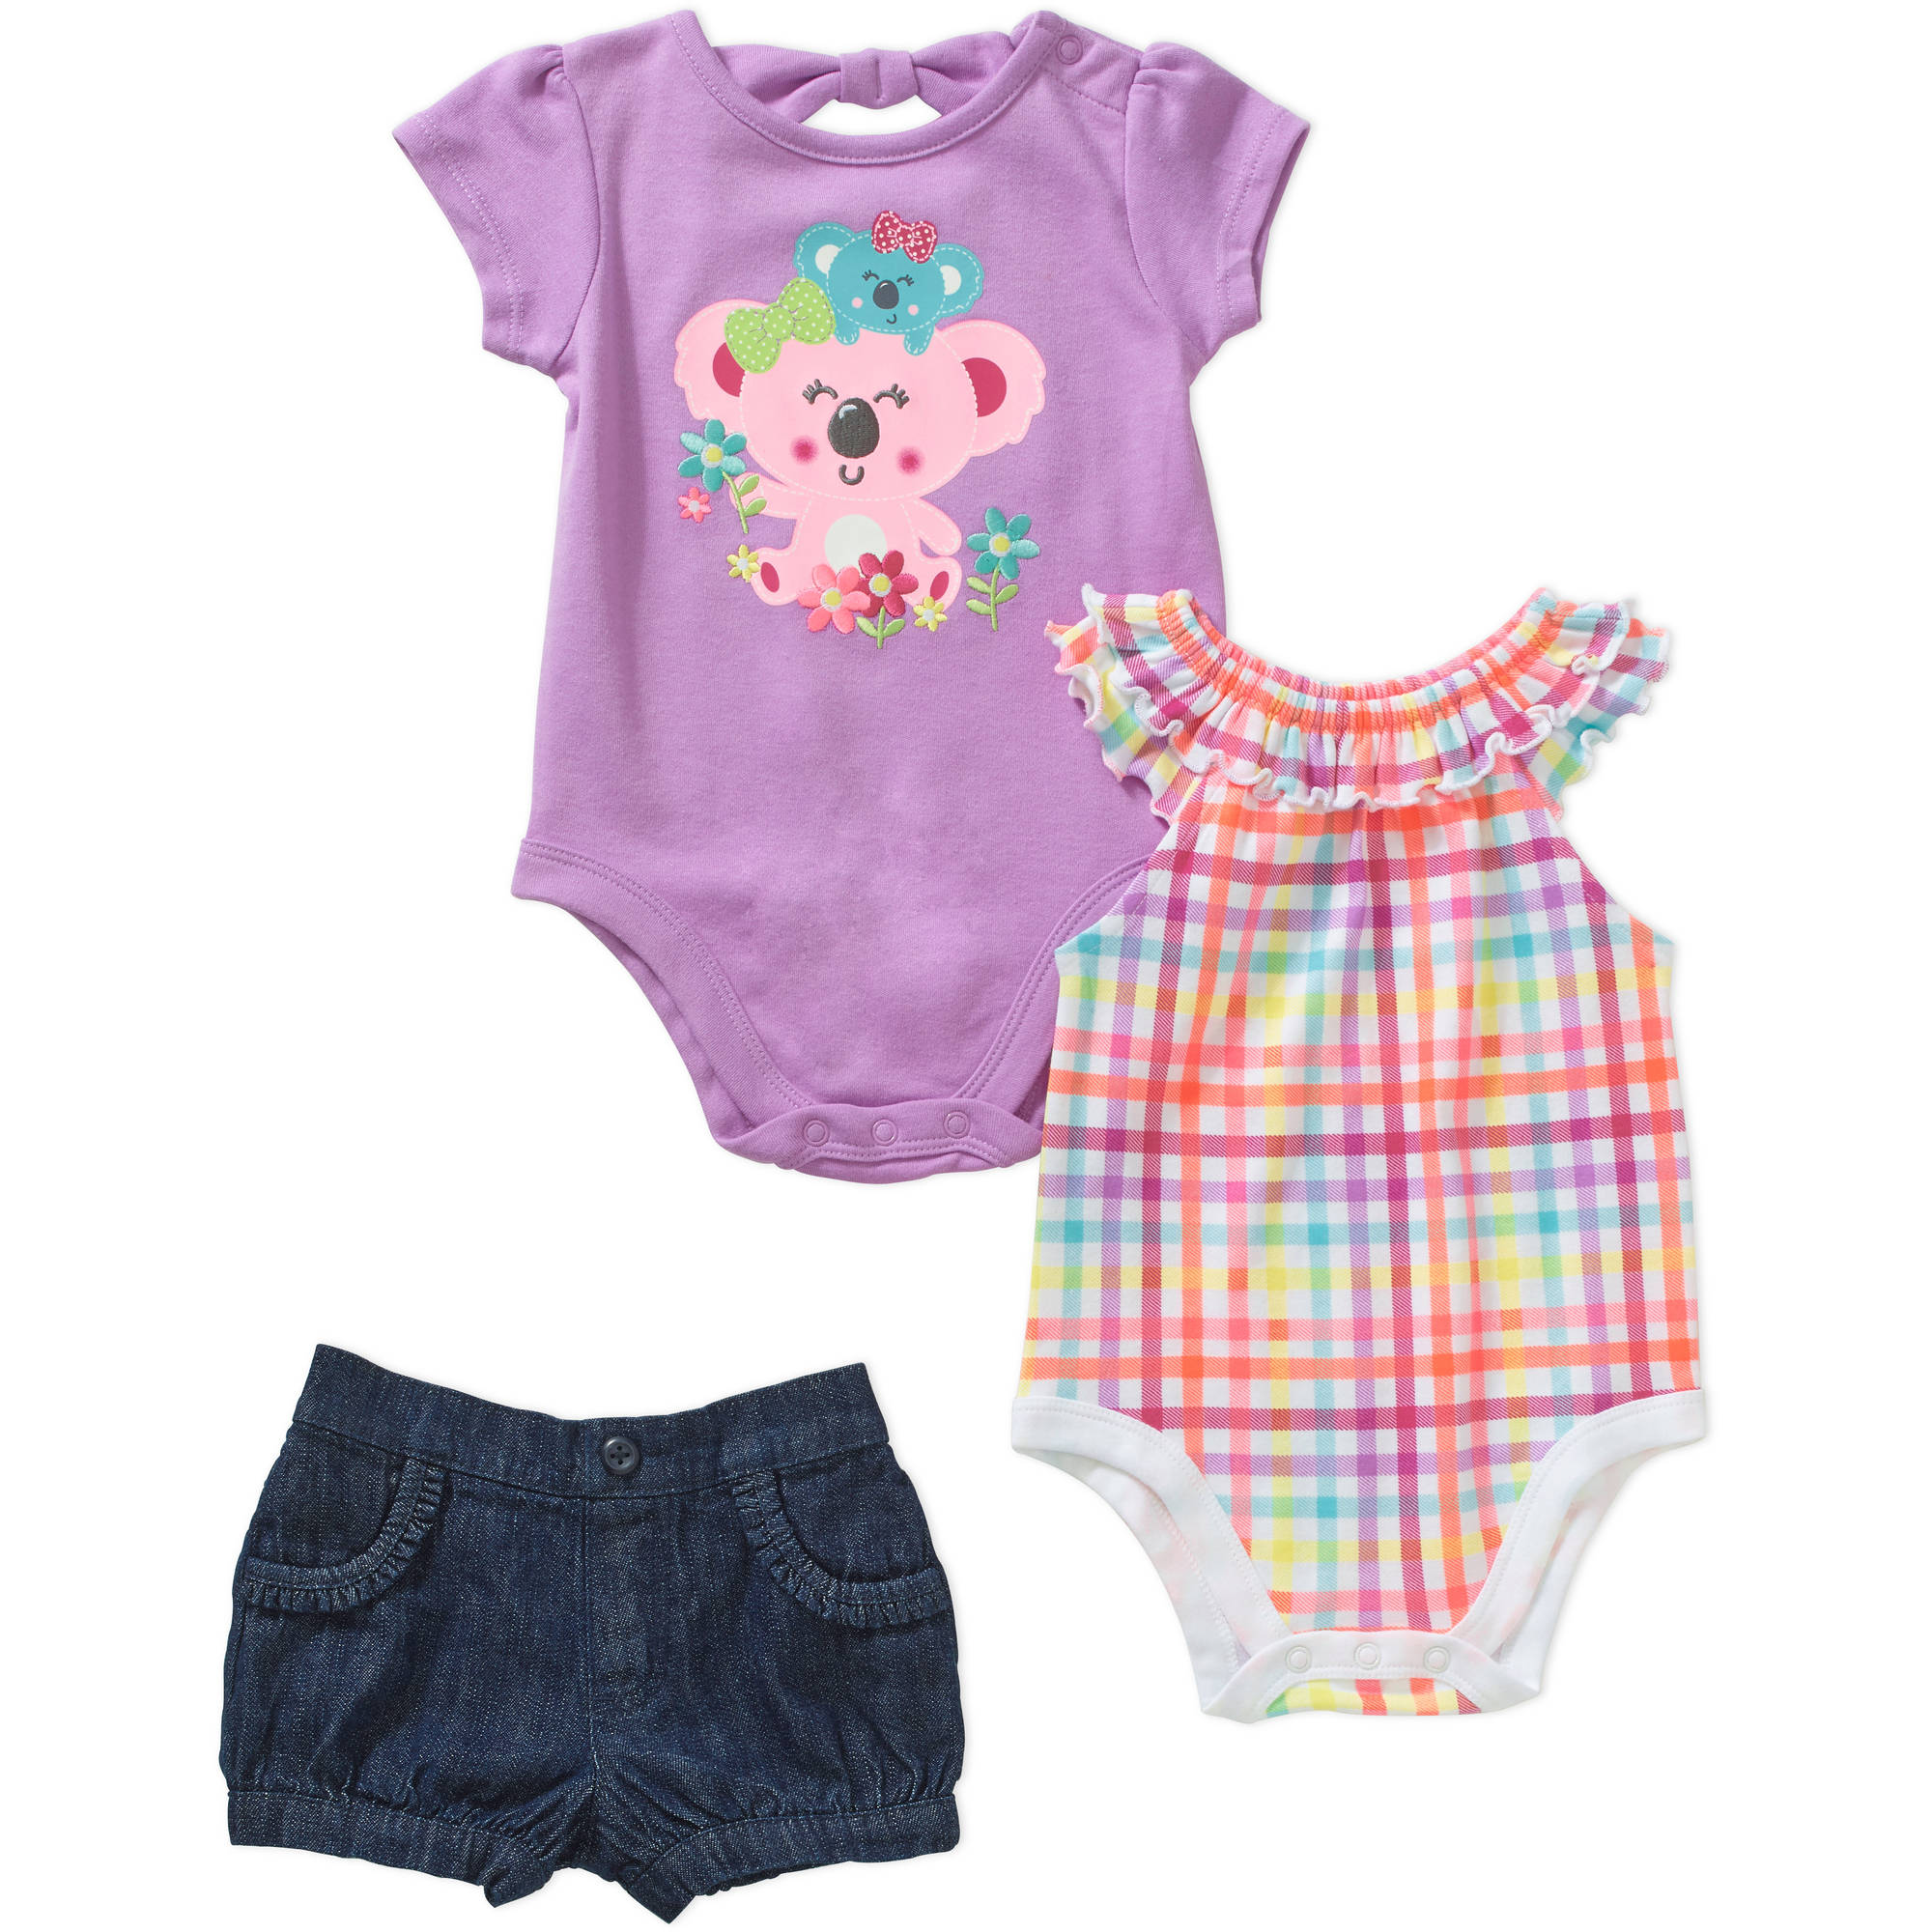 Garanimals Newborn Baby Girl Bow Back Bodysuit/Tee, Print Ruffle Neck Bodysuit and Woven Short Outfit Set